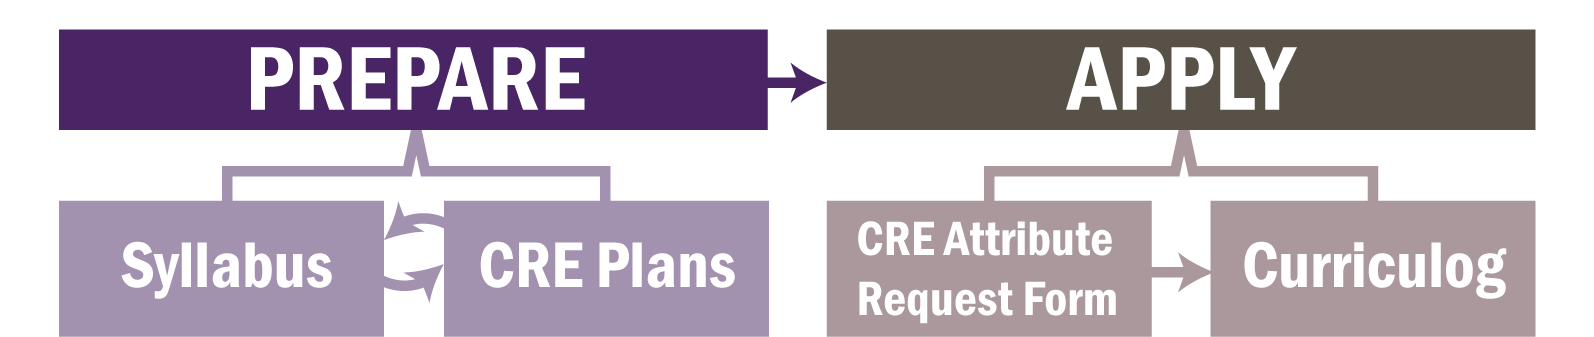 Prepare (Syllabus <-> CRE Plans) --> Apply (CRE Attribute Request Form -> Curriculog)